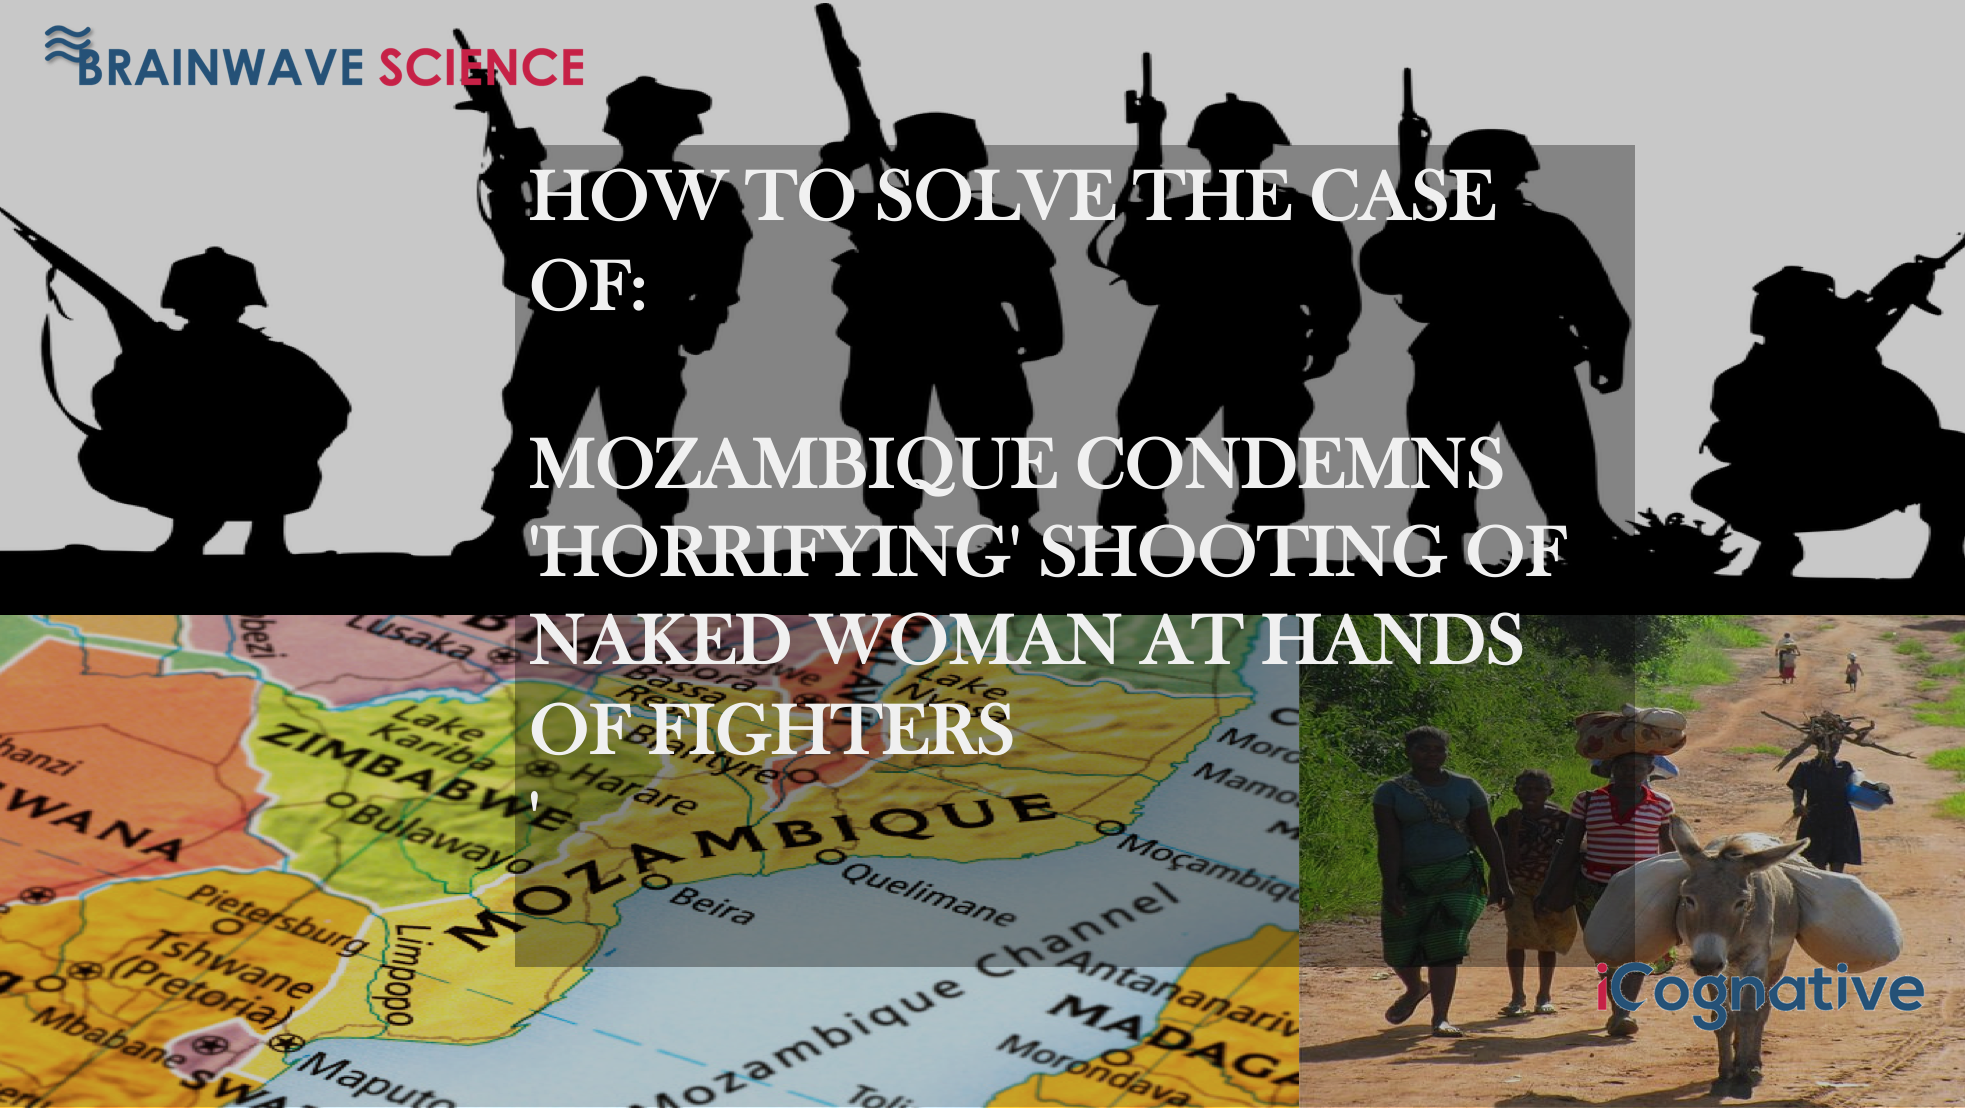 MOZAMBIQUE GOVT CONDEMNS HORRIFYING EXECUTION OF NAKED